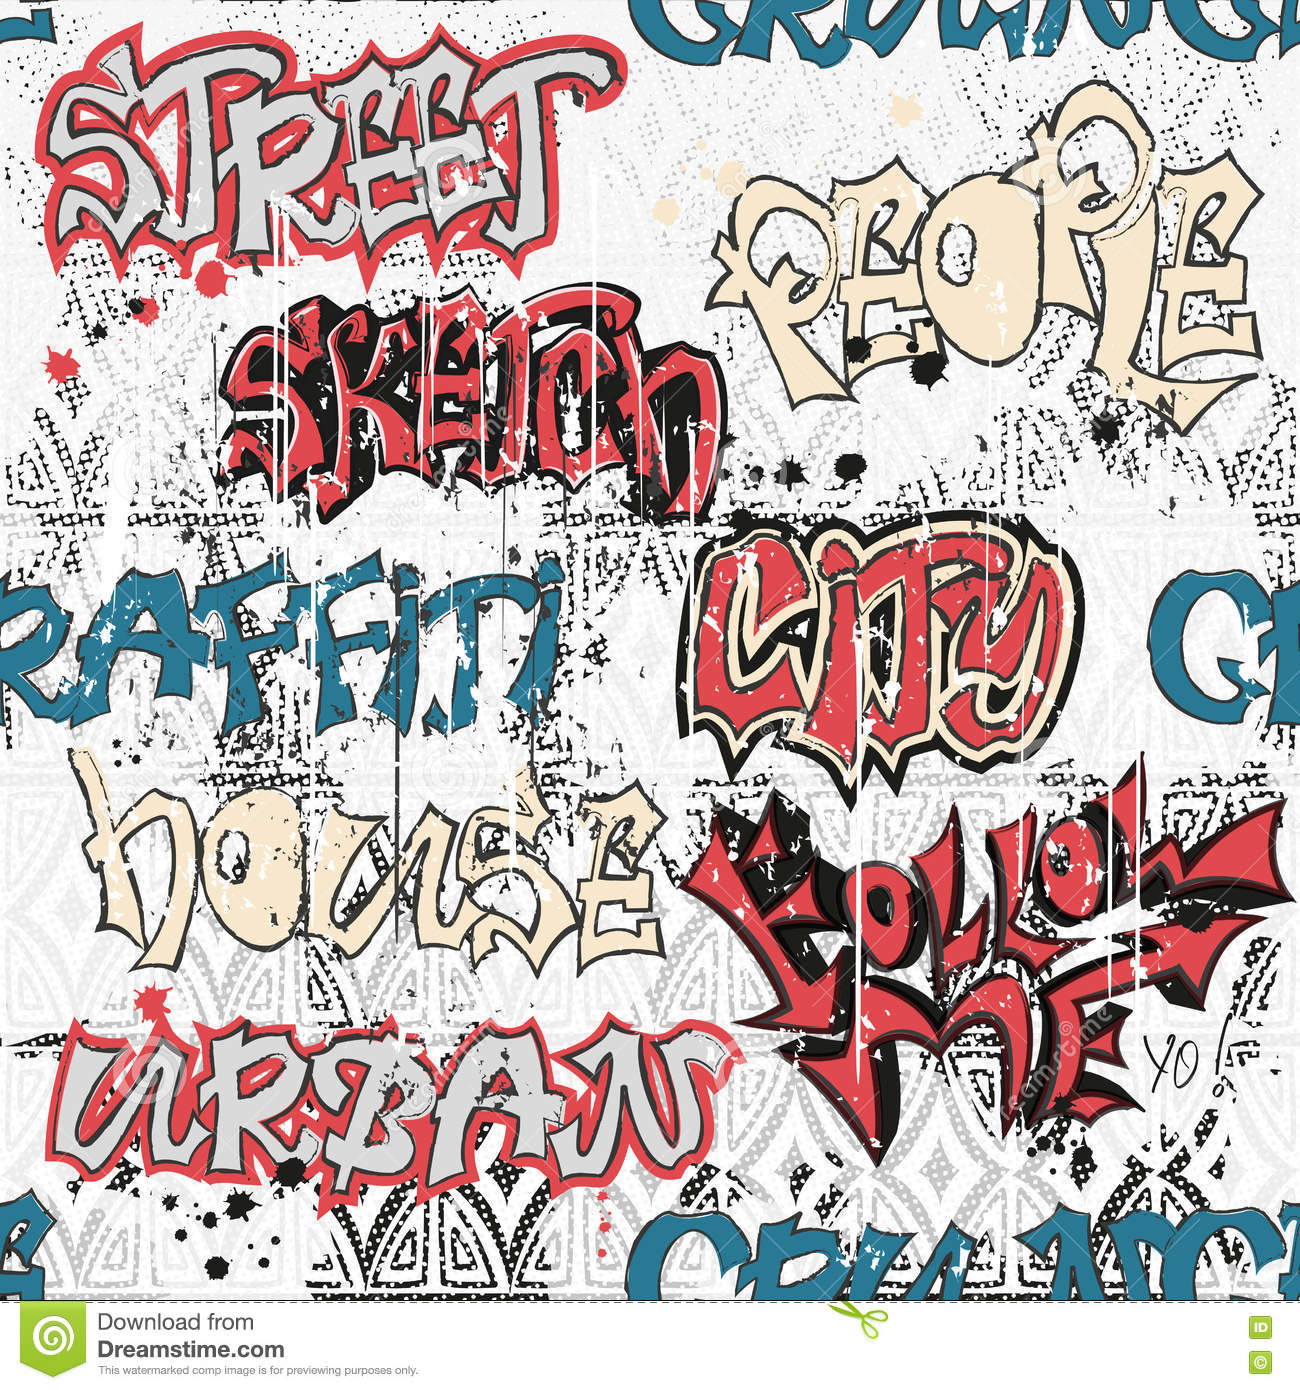 Style Urban Graphic